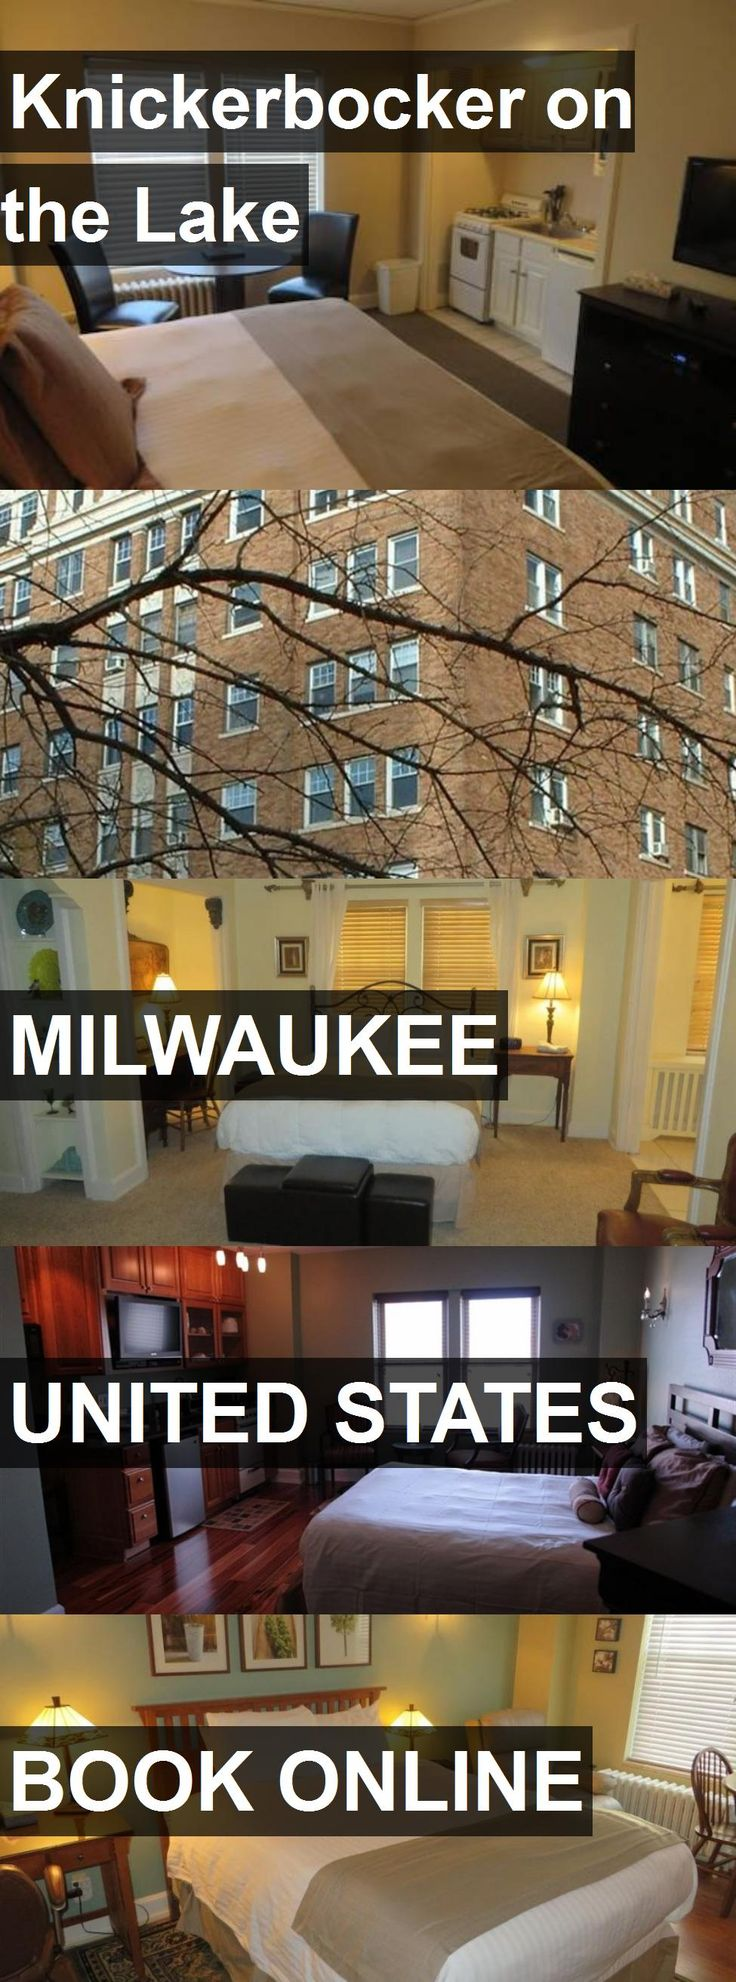 Hotel Knickerbocker on the Lake in Milwaukee, United States. For more information, photos, reviews and best prices please follow the link. #UnitedStates #Milwaukee #travel #vacation #hotel